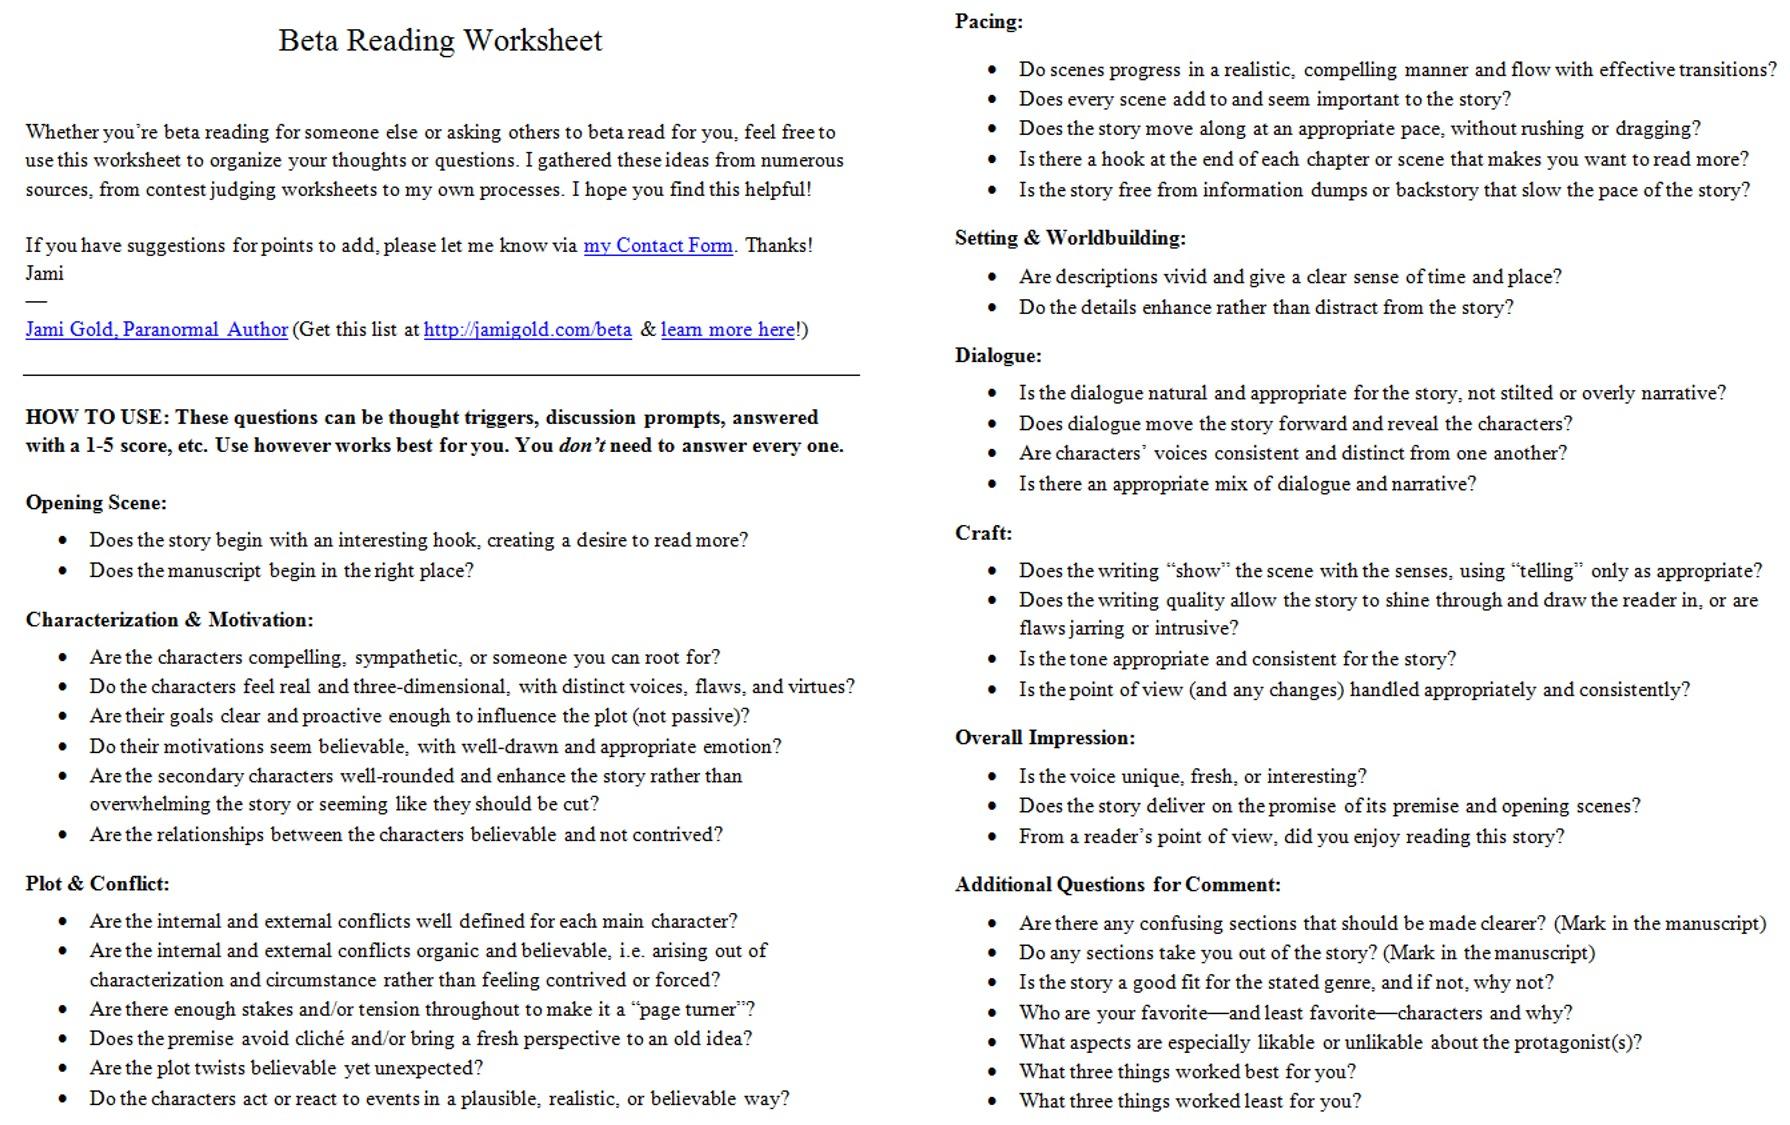 Aldiablosus  Inspiring Worksheets For Writers  Jami Gold Paranormal Author With Excellent Screen Shot Of The Twopage Beta Reading Worksheet With Appealing Multiplication Fact Families Worksheets Also  Digit Times  Digit Multiplication Worksheets In Addition  Times Table Worksheets And Beginners Algebra Worksheets As Well As Writing Worksheets For Th Grade Additionally Art Class Worksheets From Jamigoldcom With Aldiablosus  Excellent Worksheets For Writers  Jami Gold Paranormal Author With Appealing Screen Shot Of The Twopage Beta Reading Worksheet And Inspiring Multiplication Fact Families Worksheets Also  Digit Times  Digit Multiplication Worksheets In Addition  Times Table Worksheets From Jamigoldcom